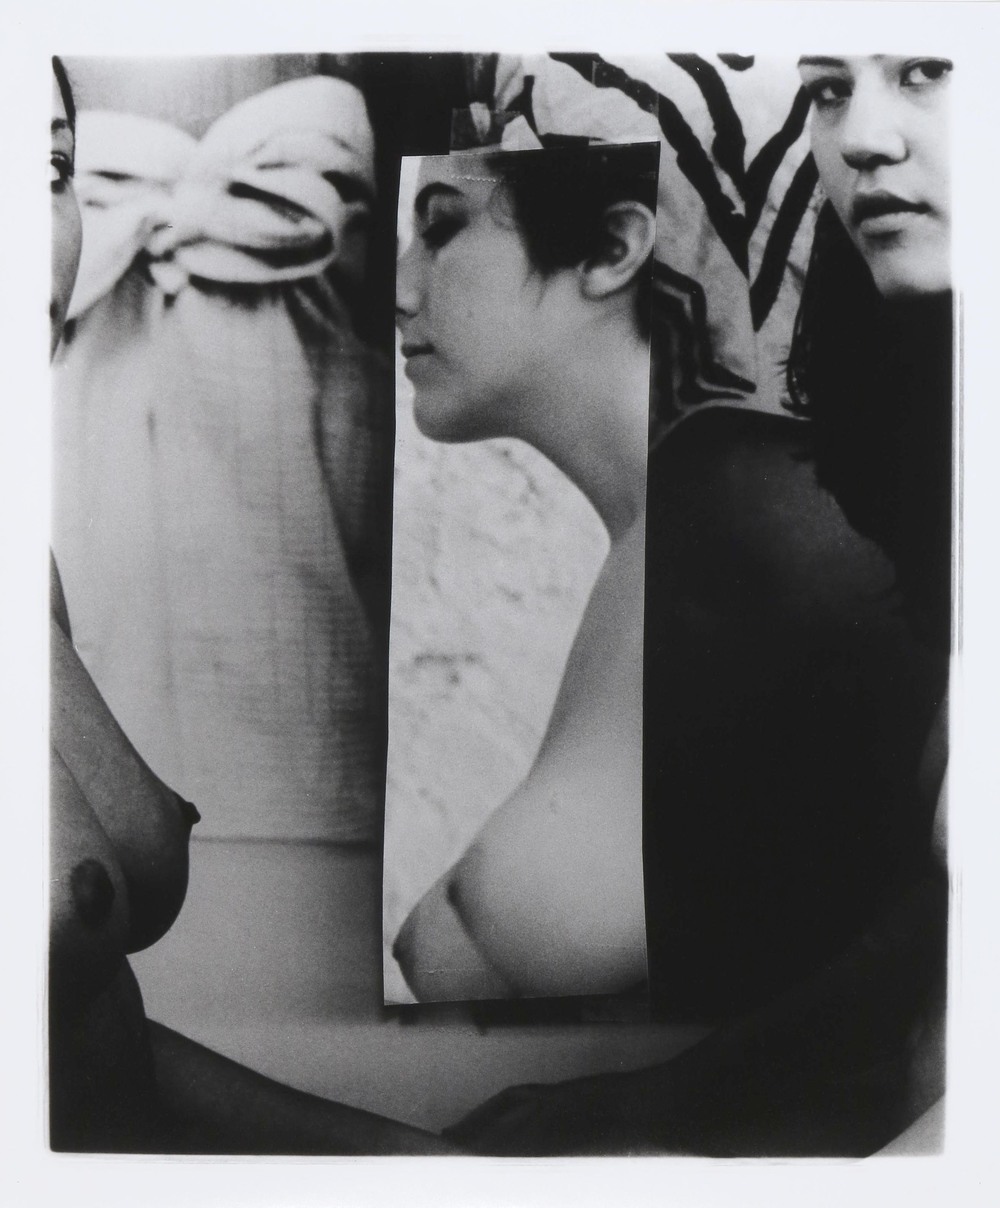 Profiles  2014  gelatin silver print  24 x 20 inches